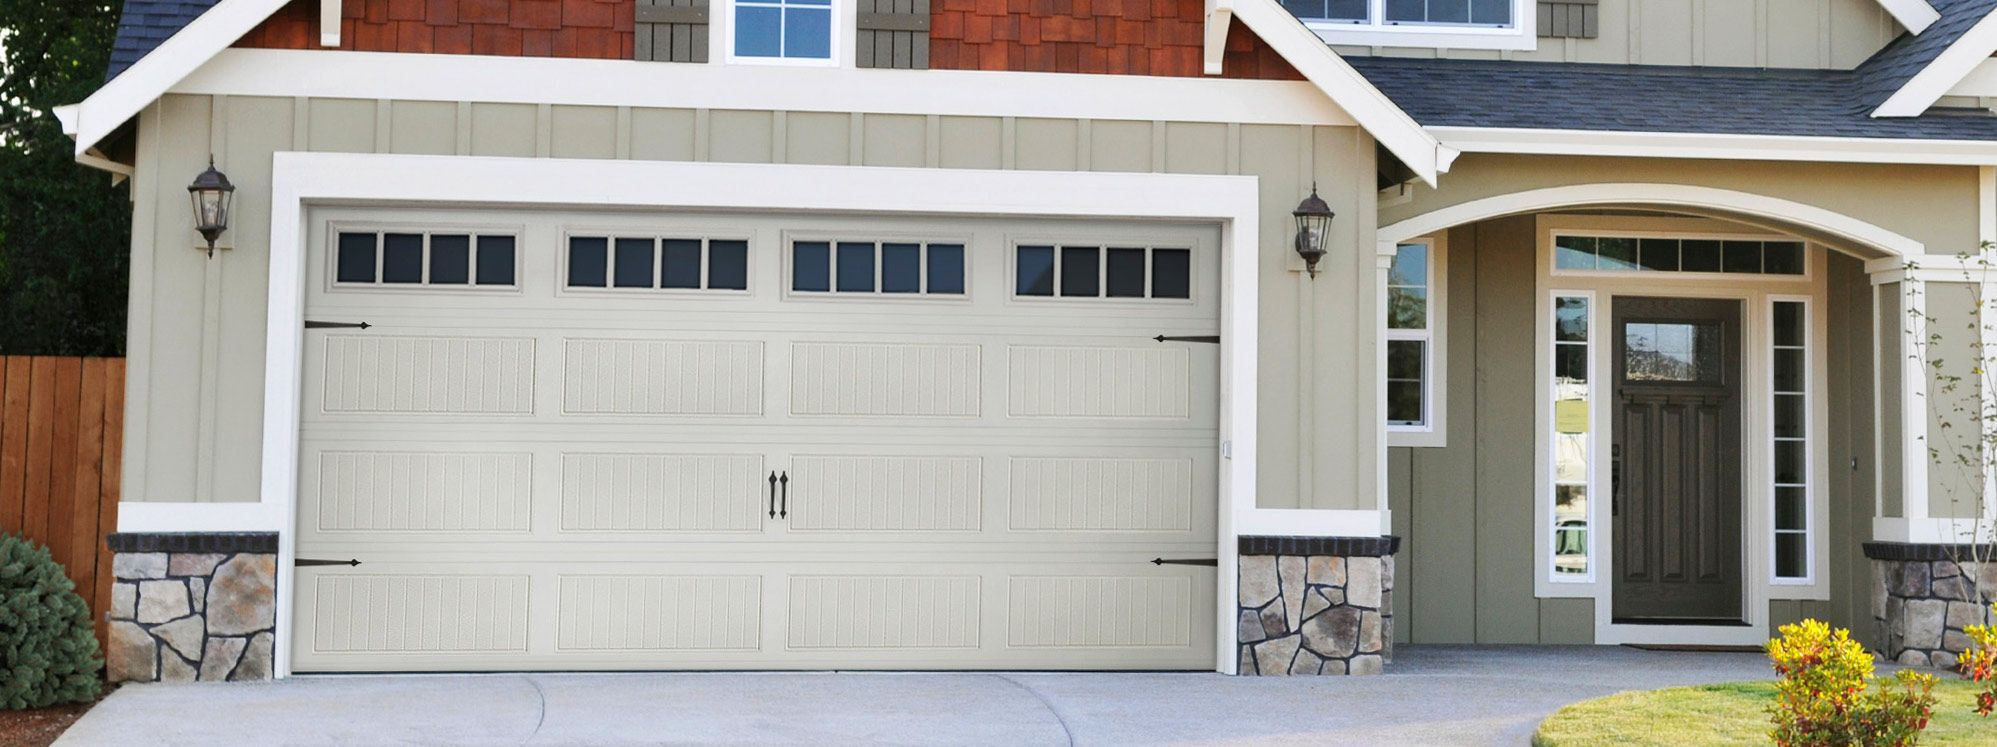 clopay our youtube doors gallery garage g review door companies collection composite